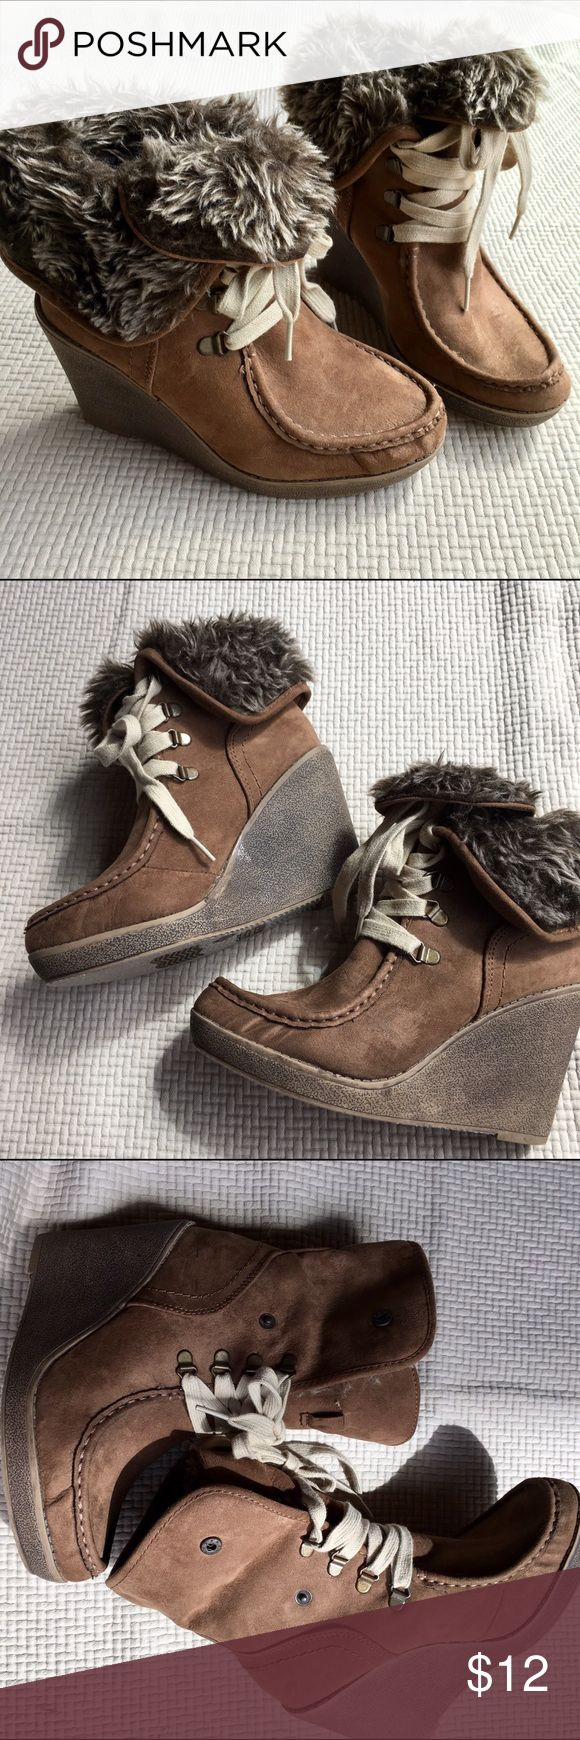 Fur lace-up wedge boogie Fabulous winter wedge lace-up boots with faux fur lining of shaft. Worn a handful of times and have minor wear, as pictured. Fits true to size. Mossimo Supply Co Shoes Lace Up Boots